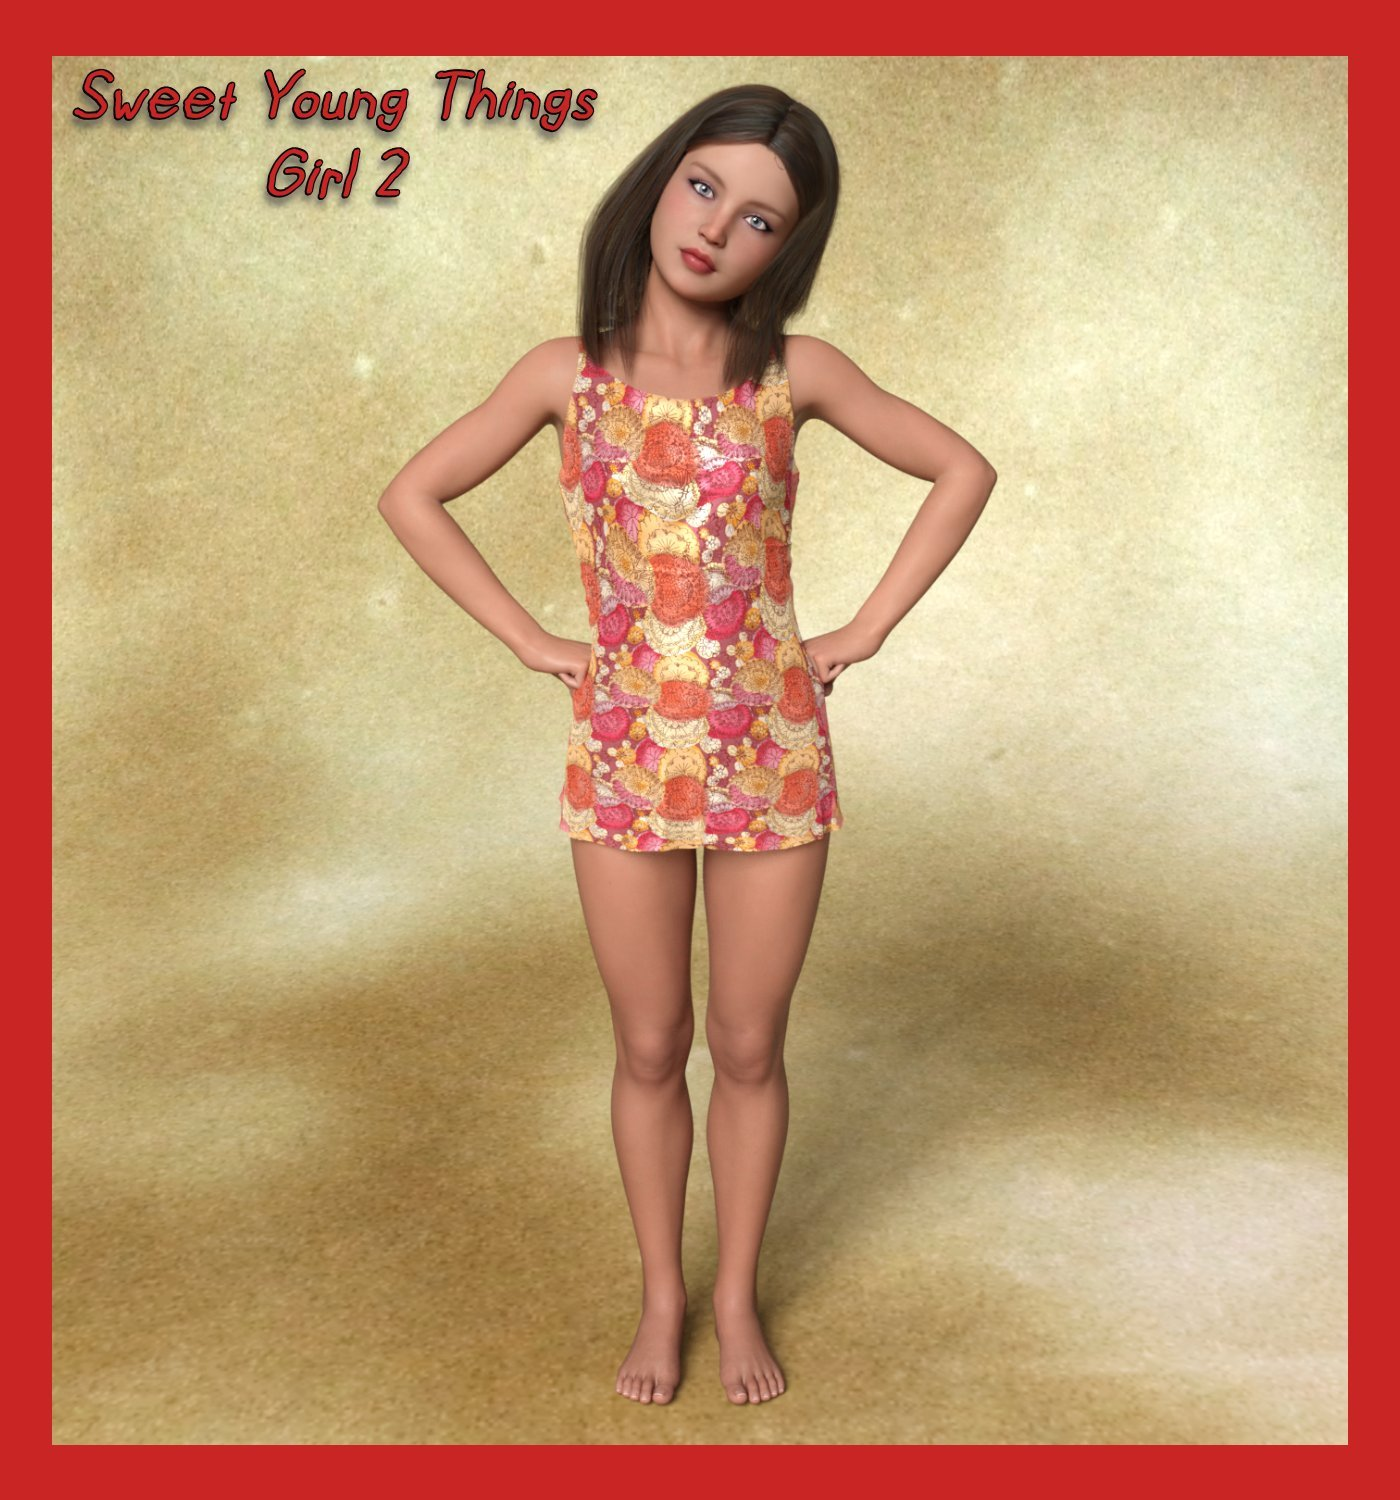 Young girls pics sweet 20 Celebrity